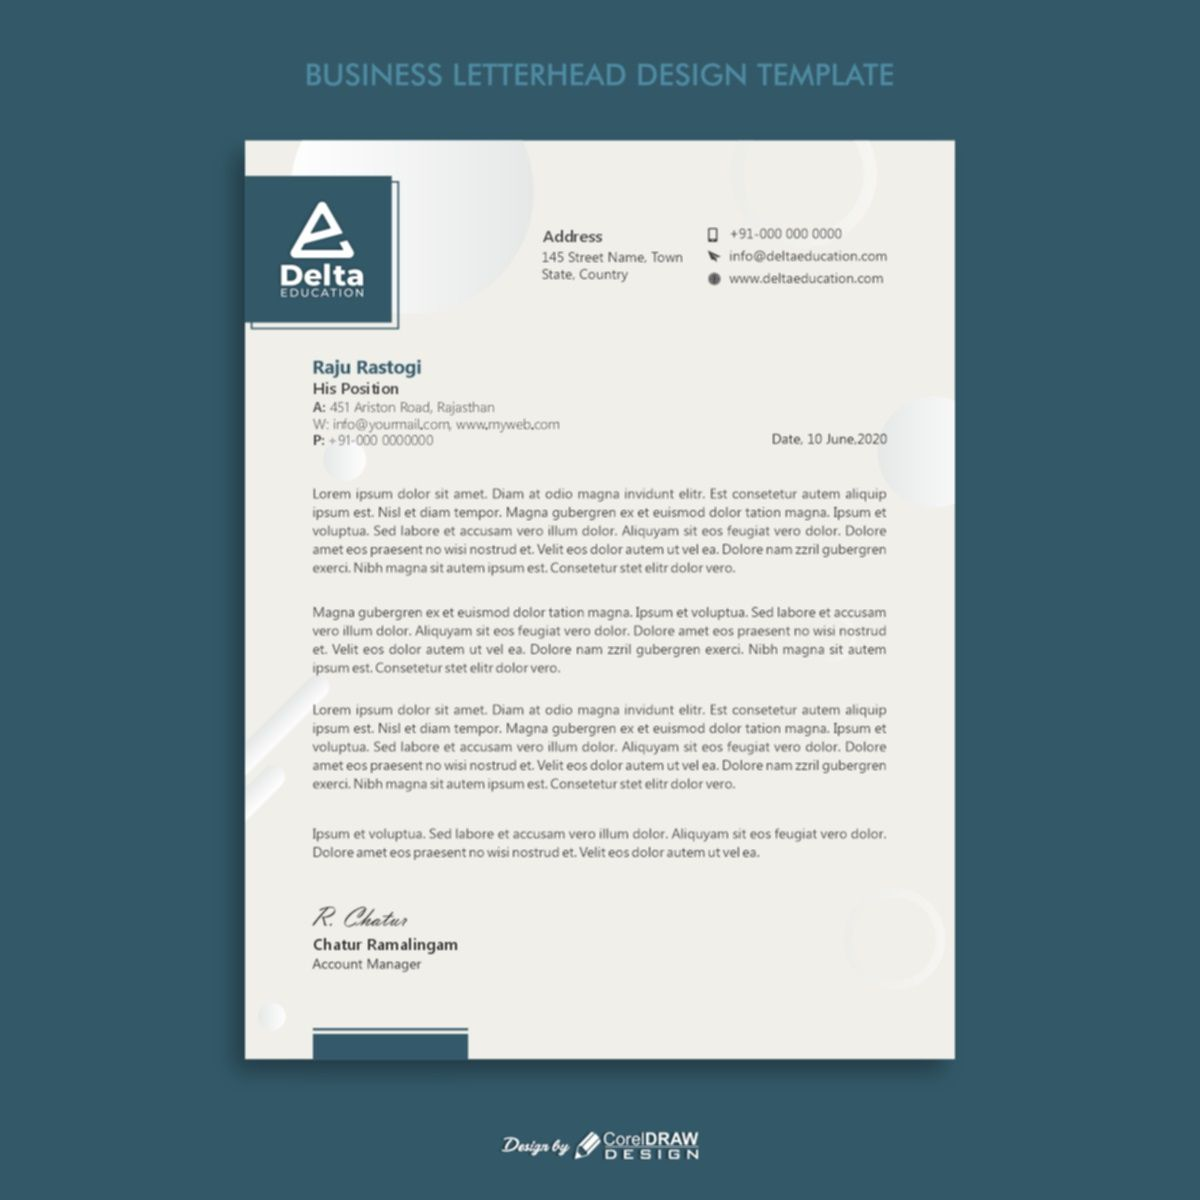 002 Formidable Letterhead Template Free Download Cdr Sample Full